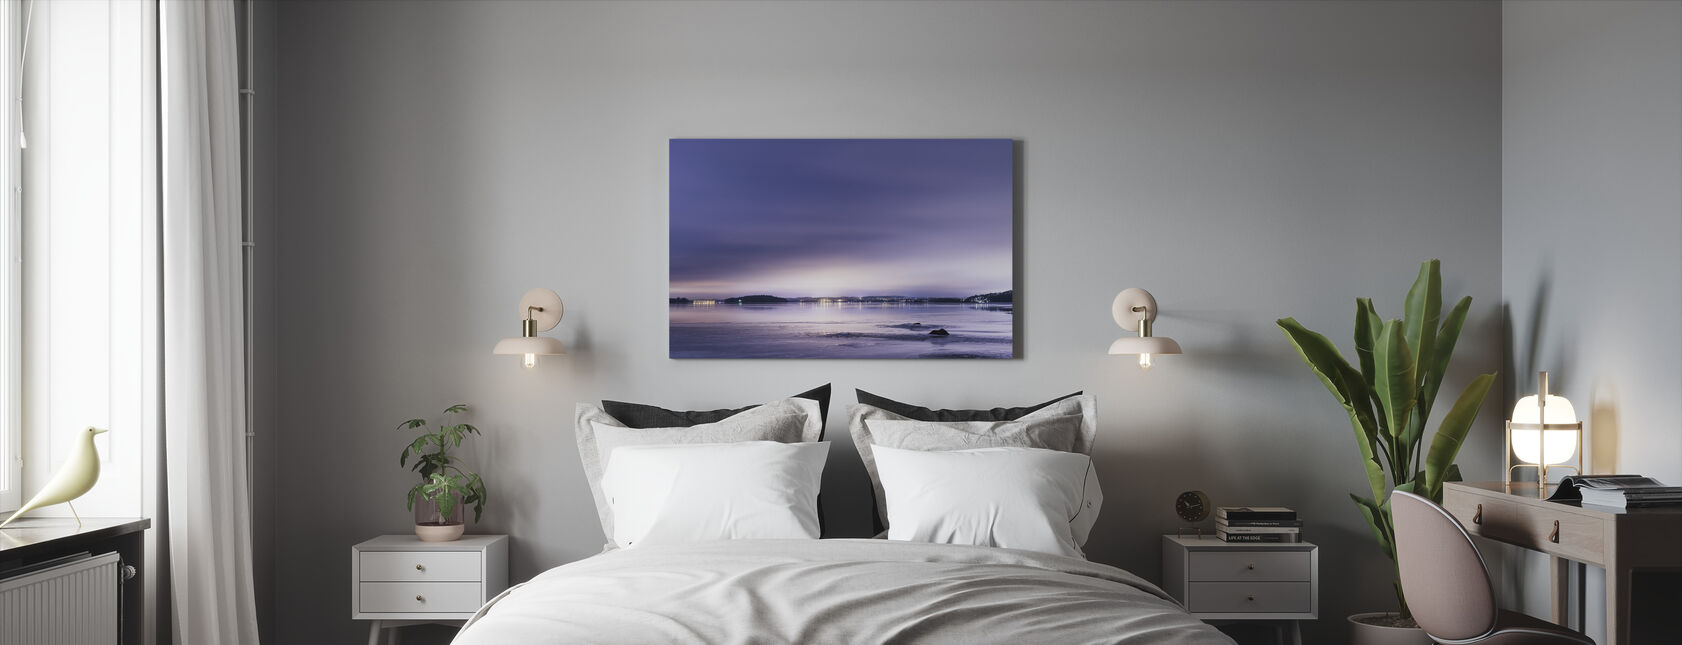 Purple Evening - Canvas print - Bedroom